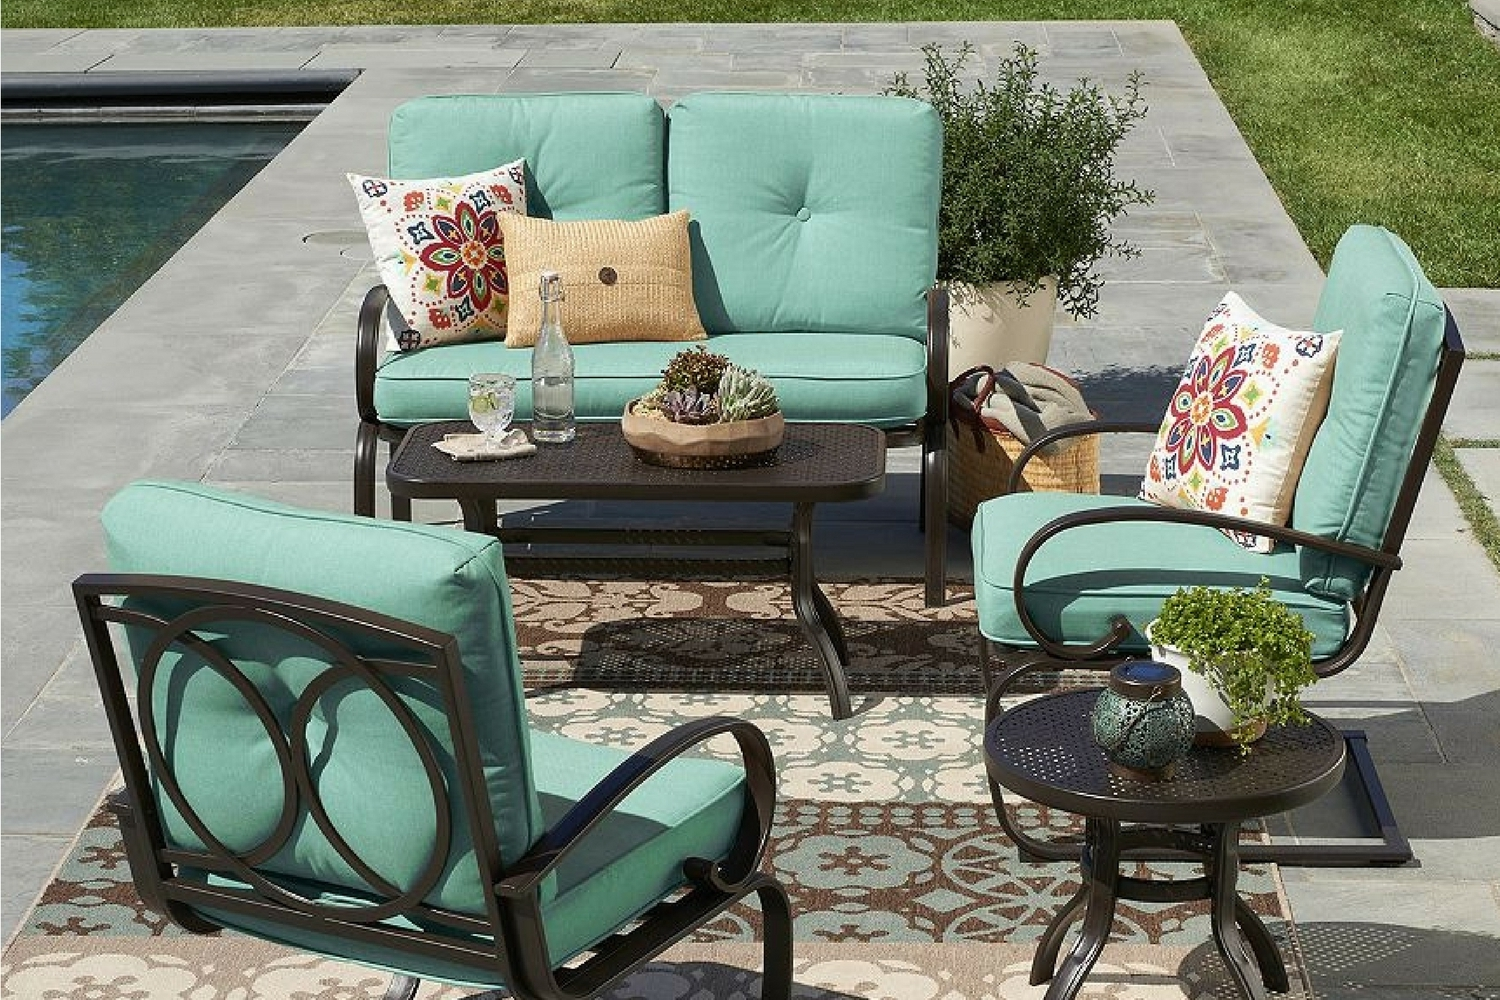 Kohl's Is Having A Huge Sale On Patio Furniture Right Now - Dwym intended for Most Popular Kohl's Patio Conversation Sets